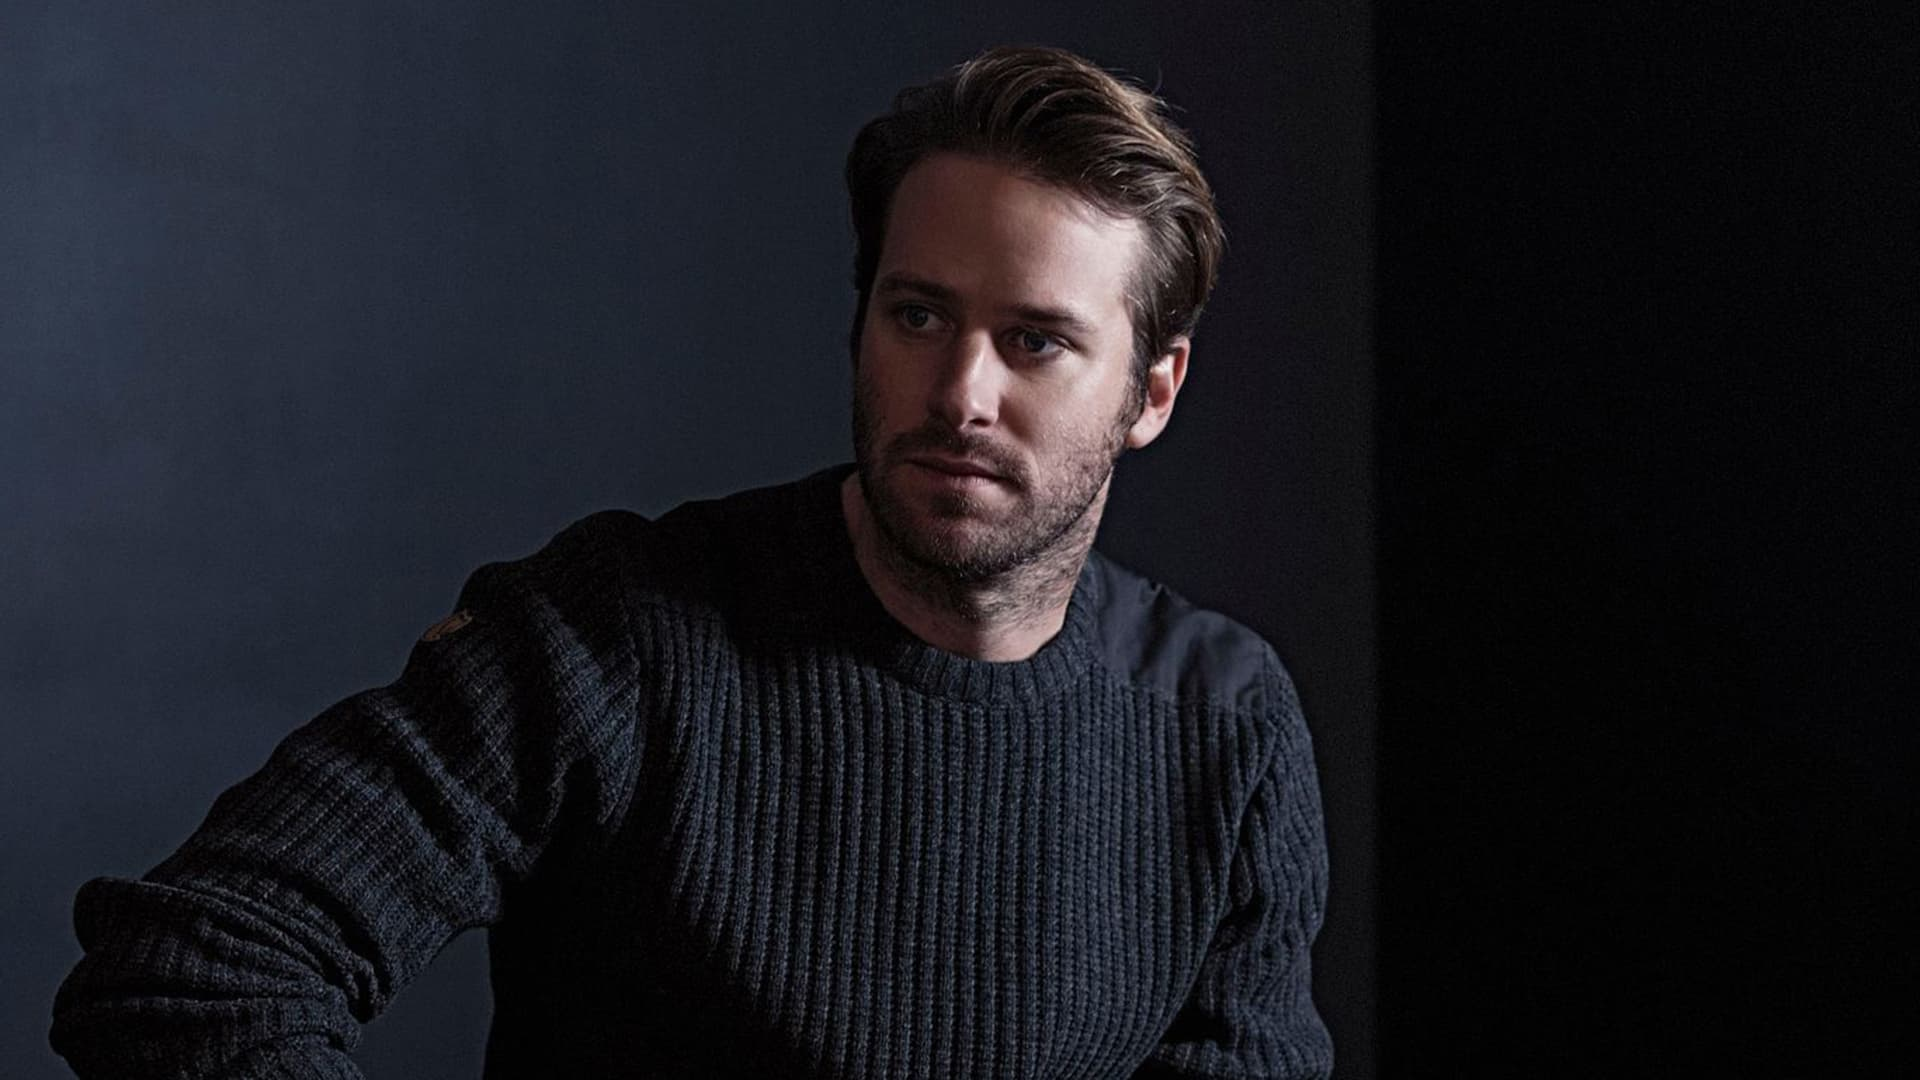 armie hammer wallpapers hd high quality download